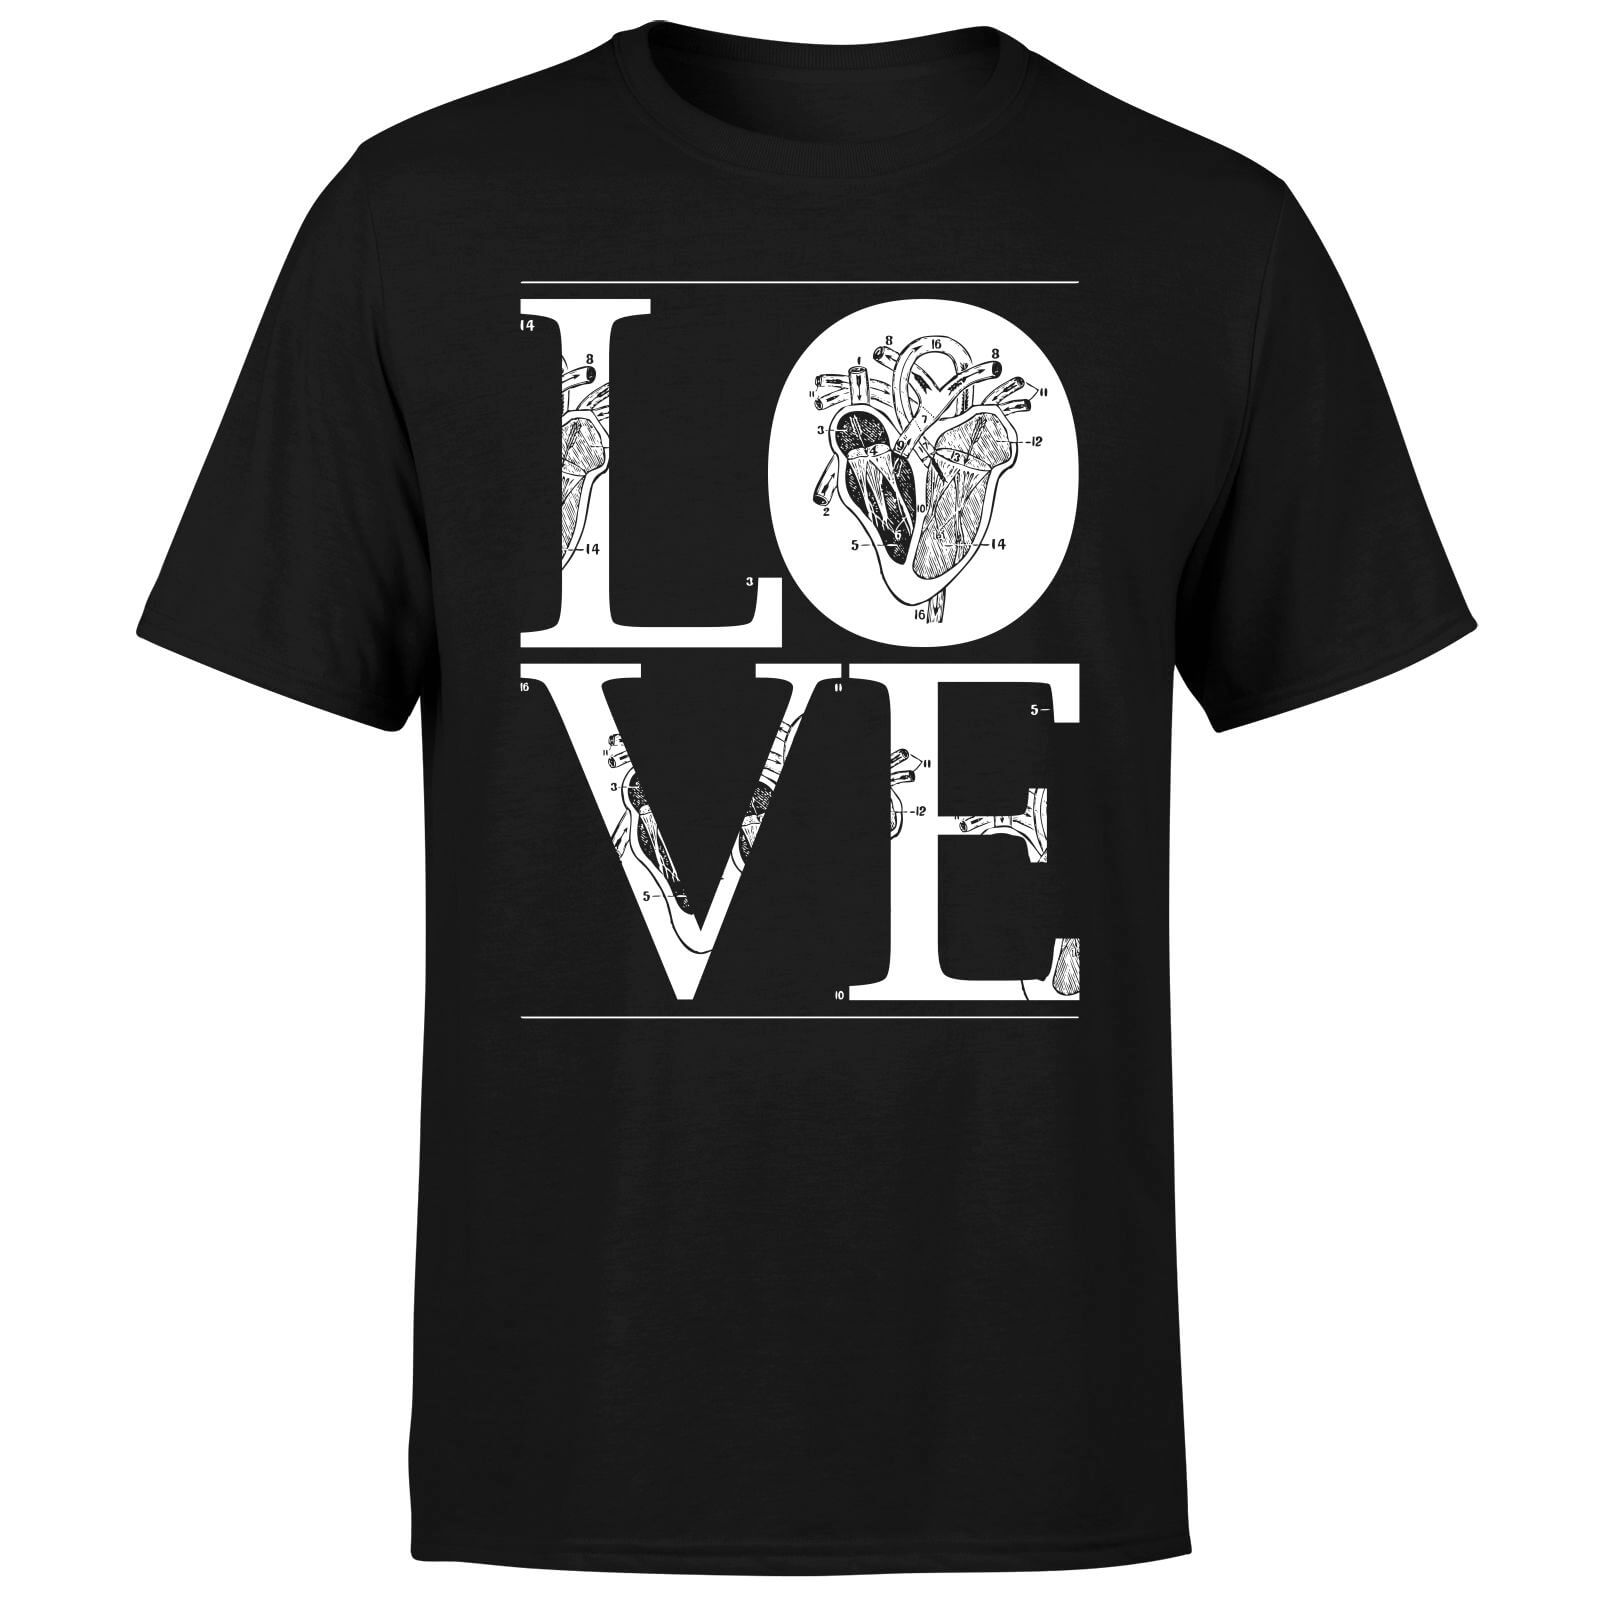 Anatomic Love T-Shirt - Black